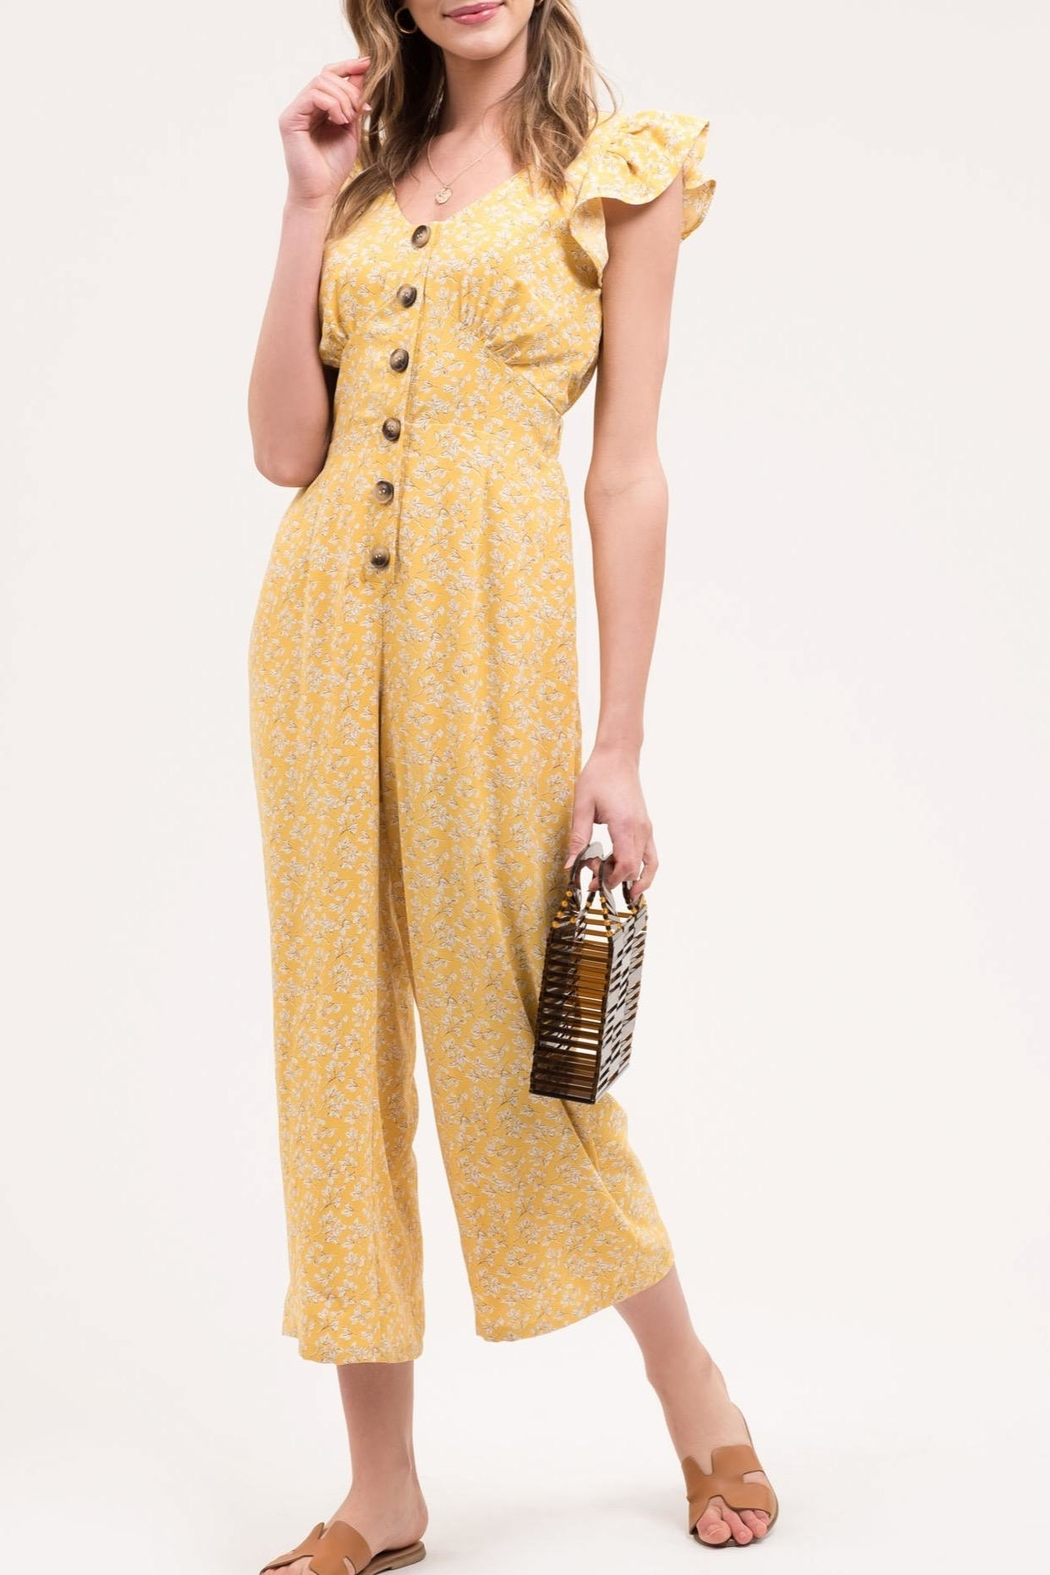 Blu Pepper Yellow Floral Jumpsuit - Main Image